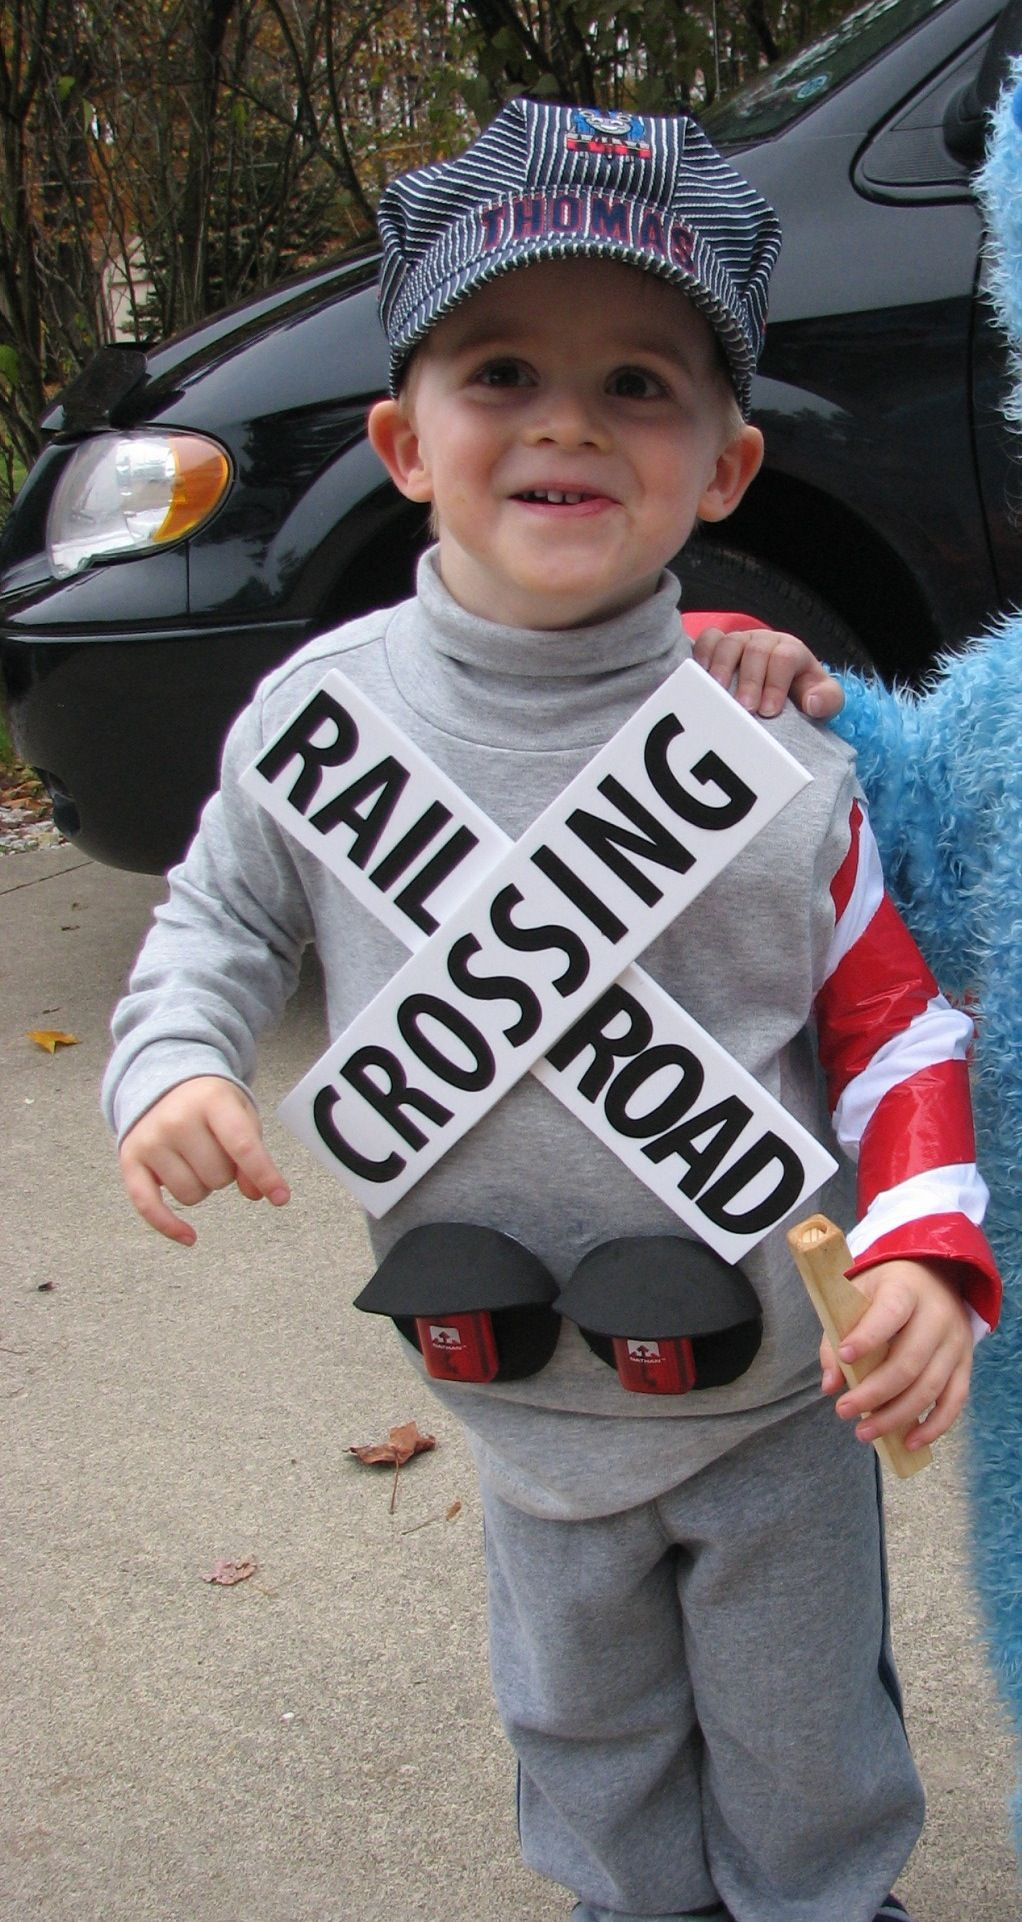 railroad crossing signal costume for my son, complete with working